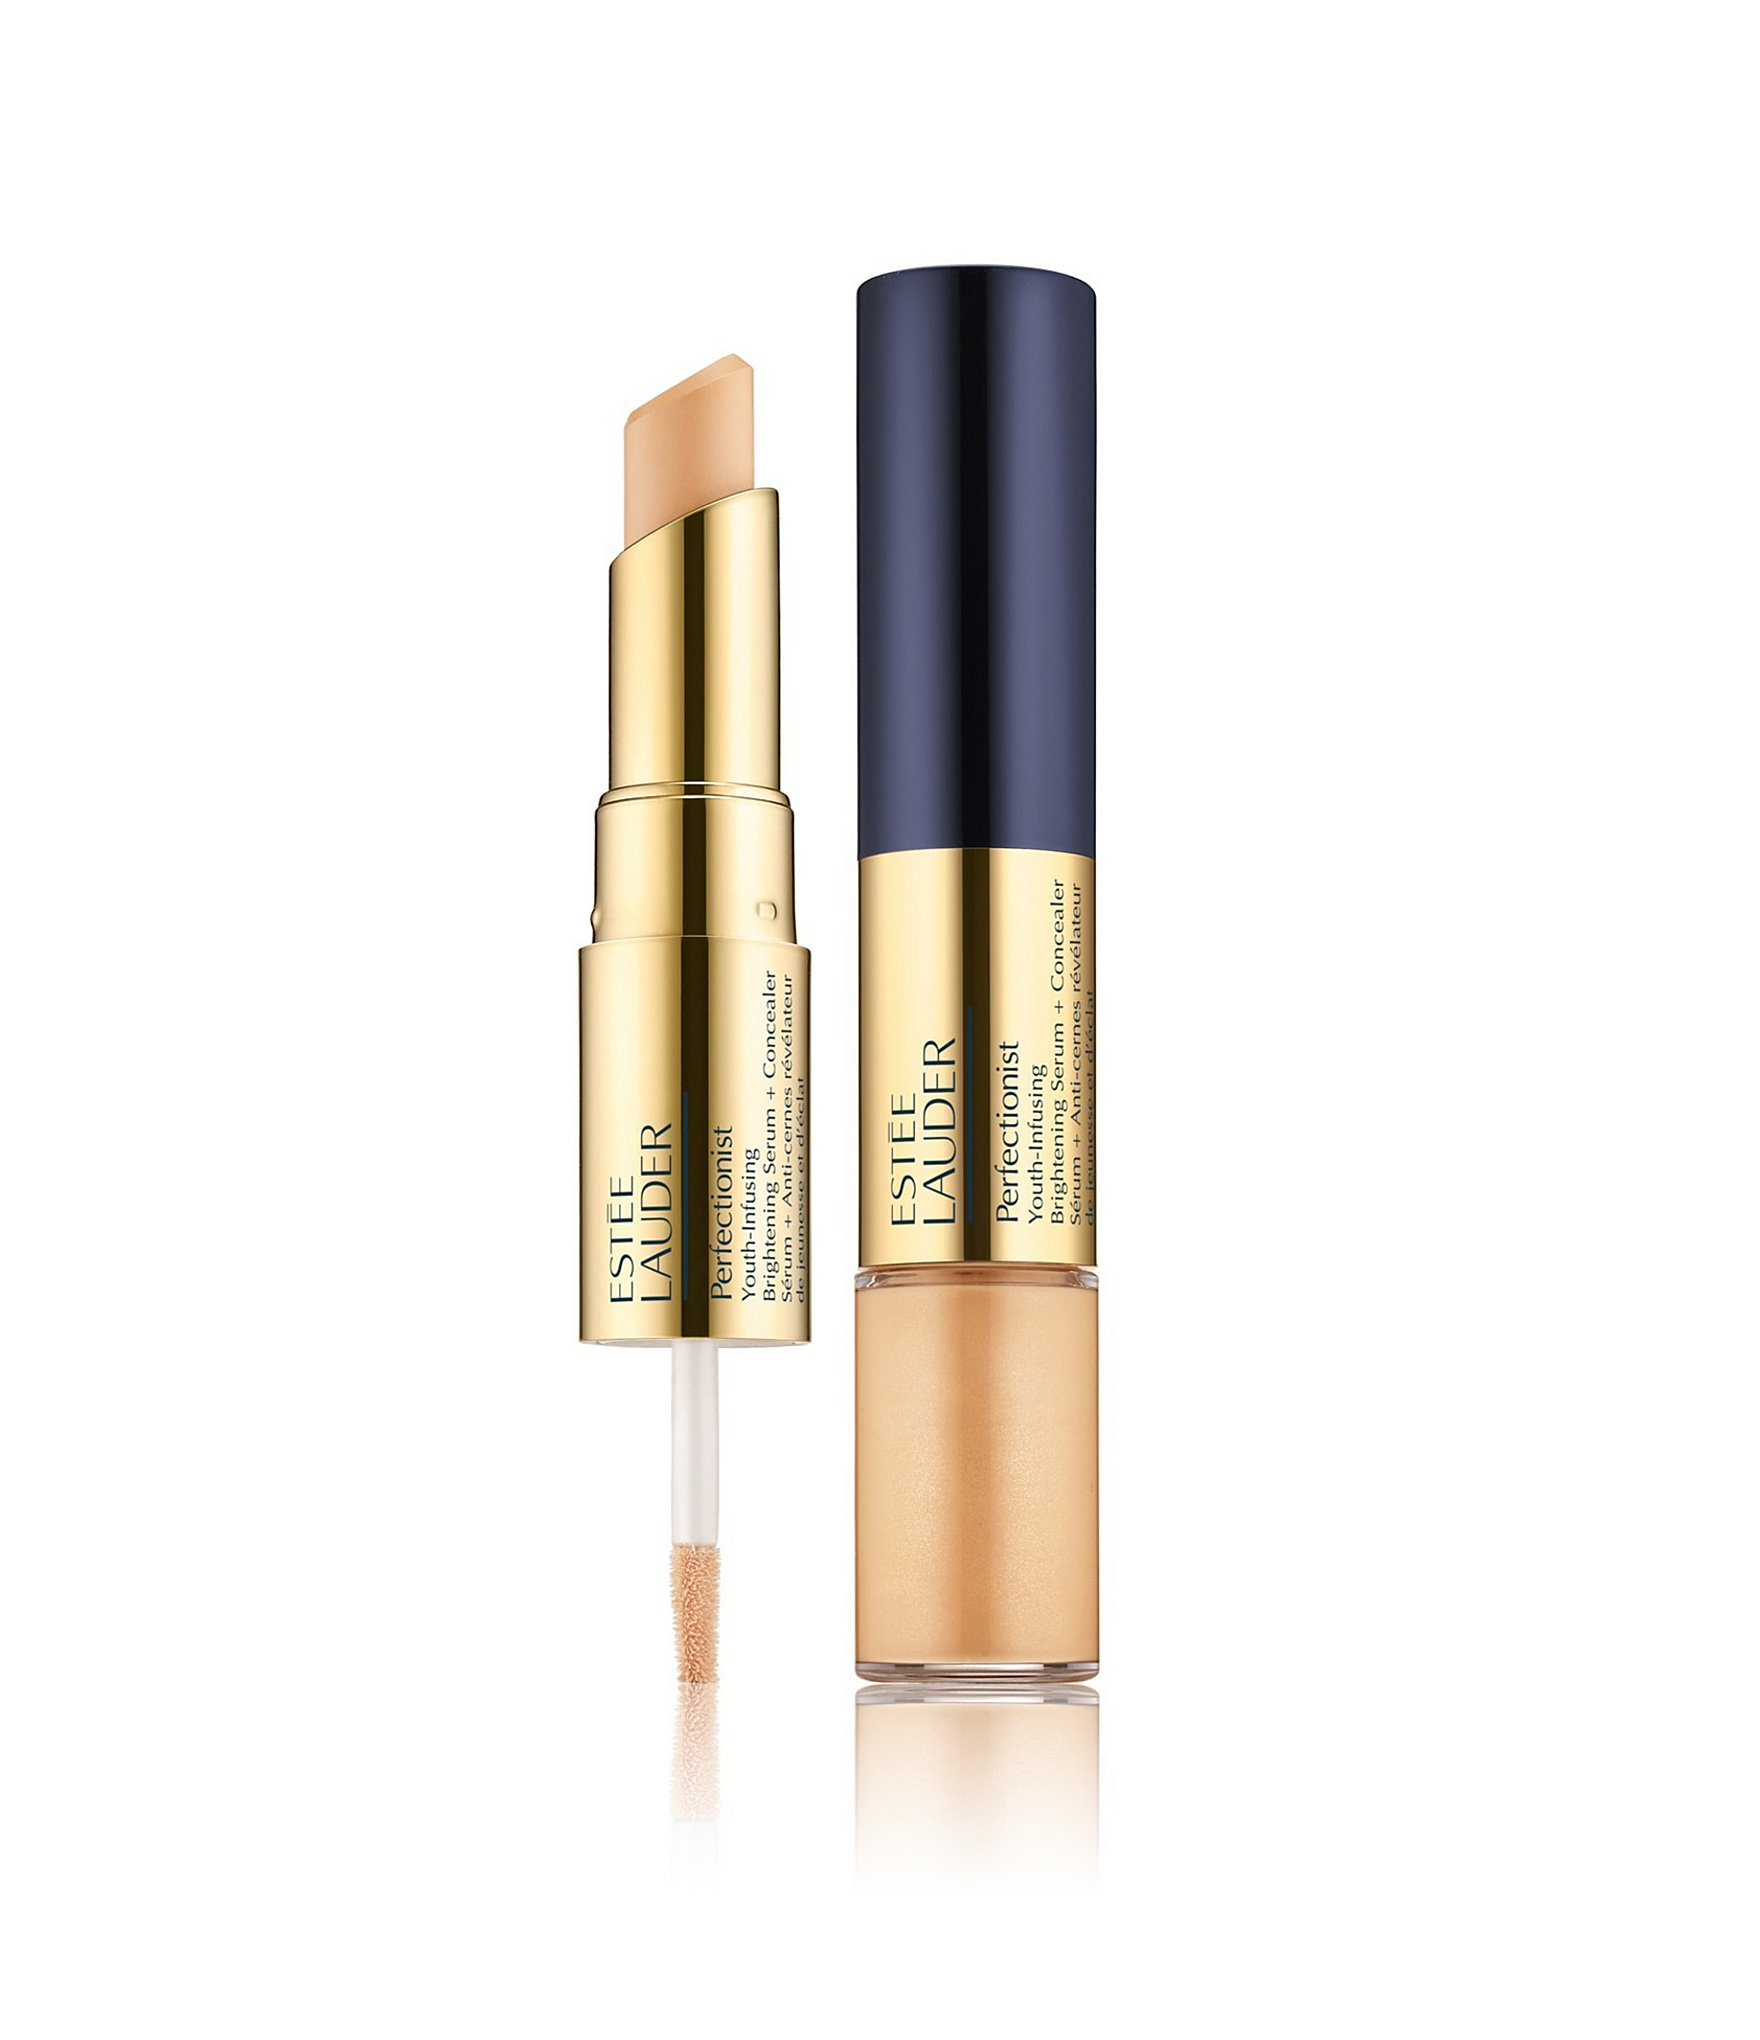 Estee Lauder Perfectionist Youth-Infusing